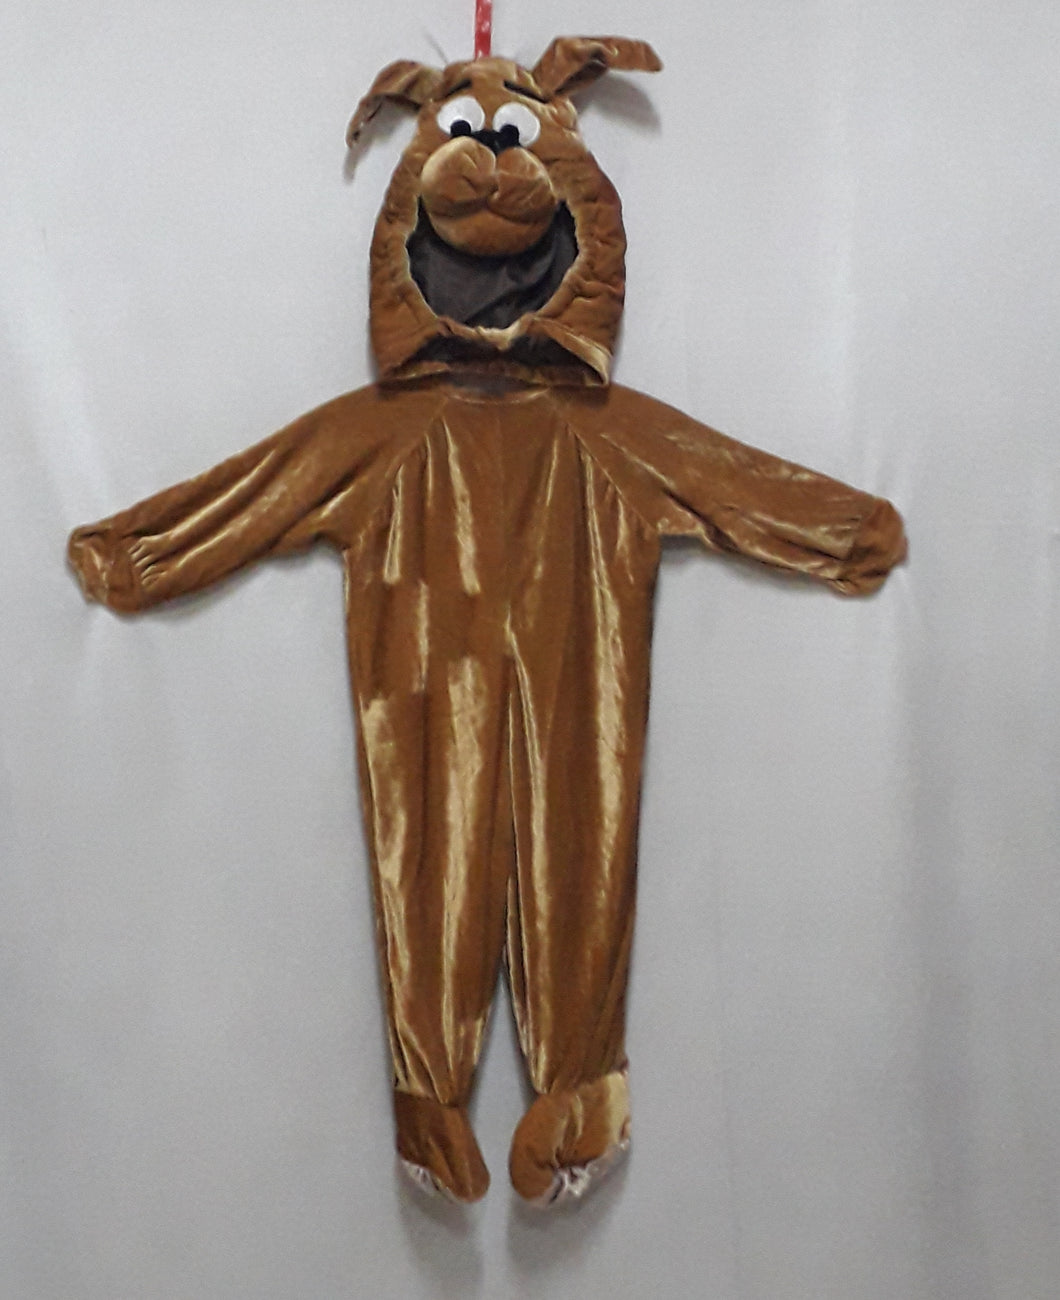 Dog Costume for Kids 1-2y